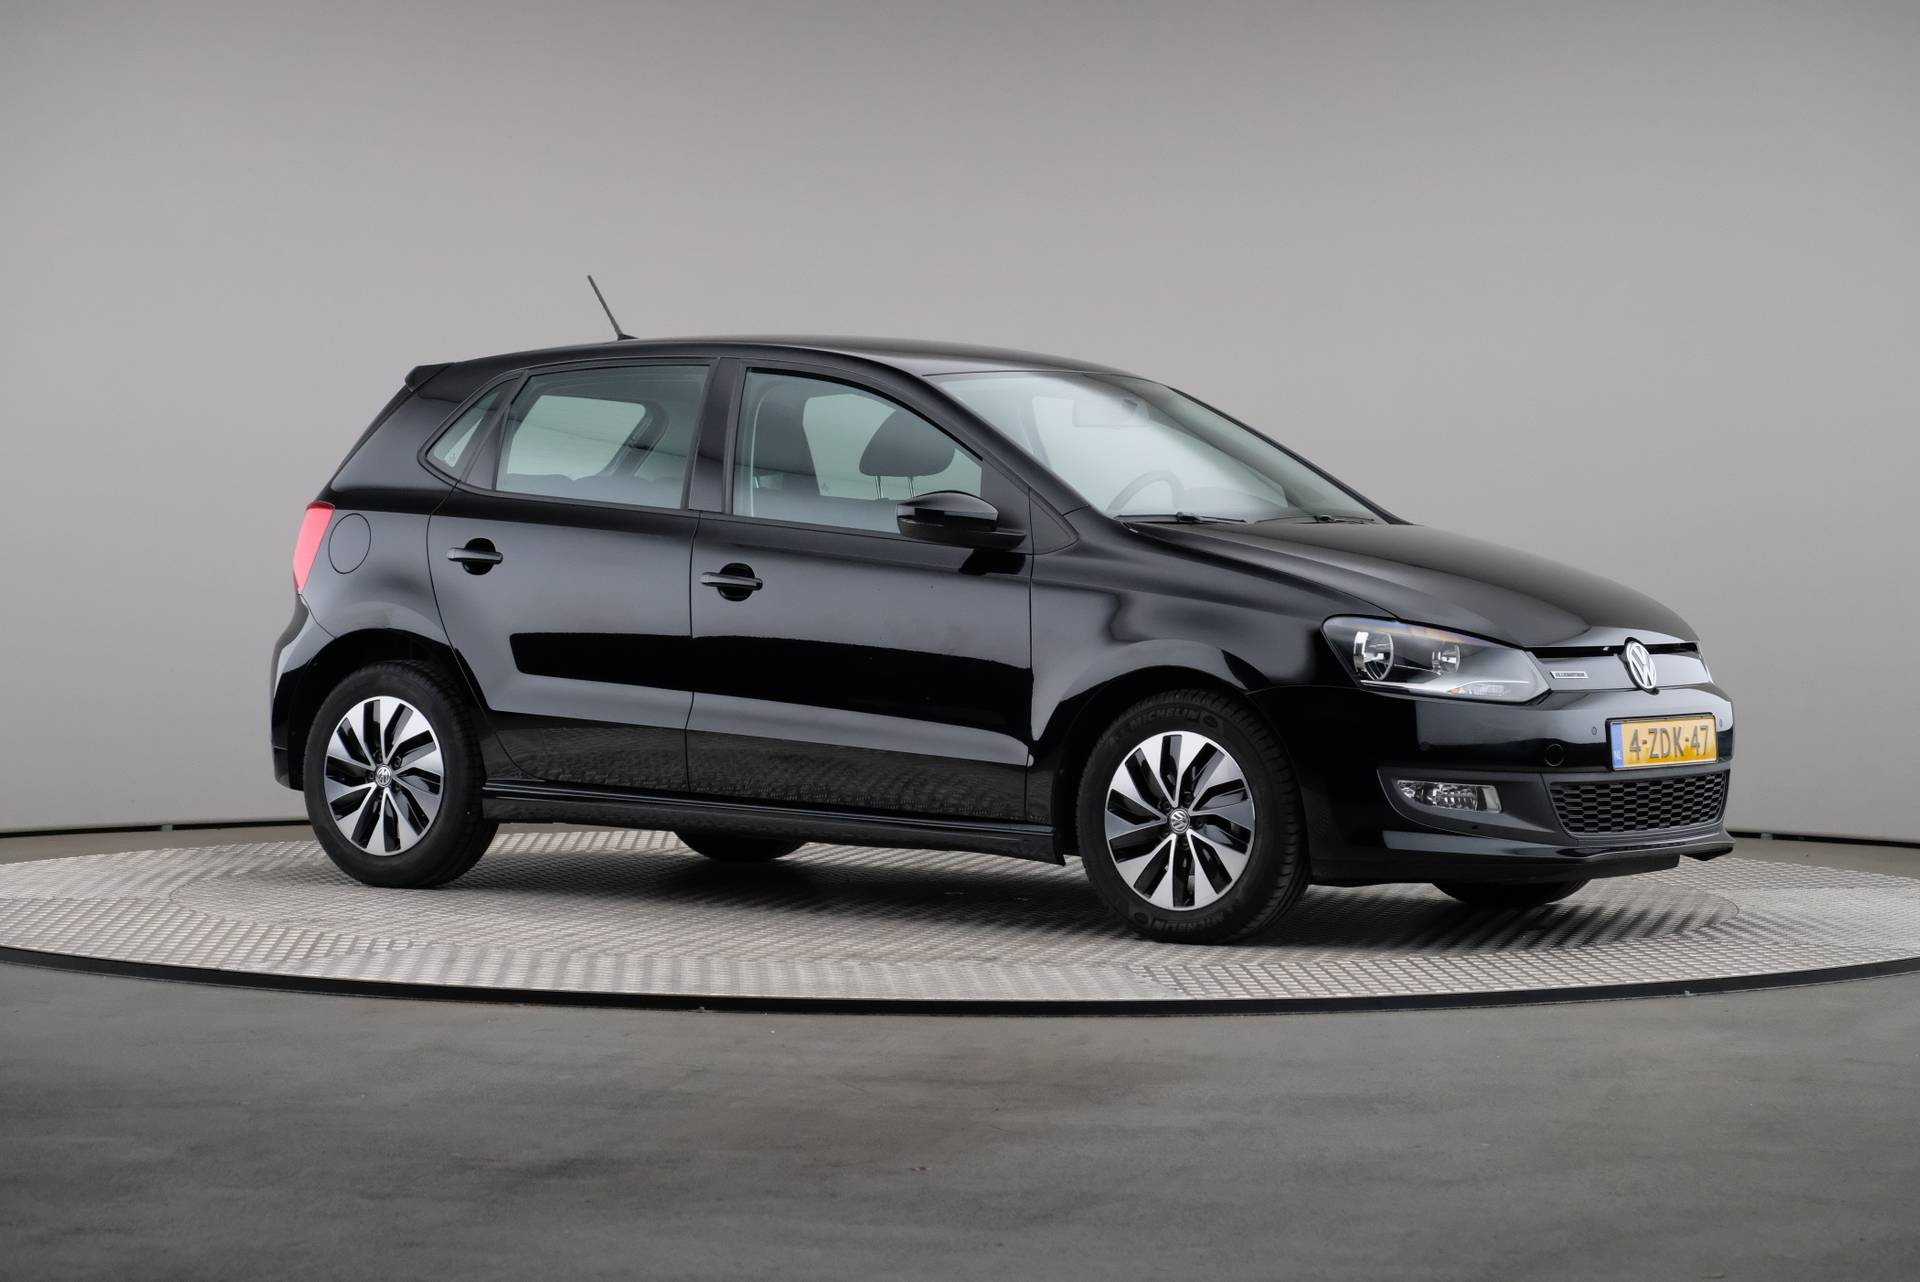 Volkswagen Polo 1.4 TDI BlueMotion Executive plus, Navigatie, 360-image27